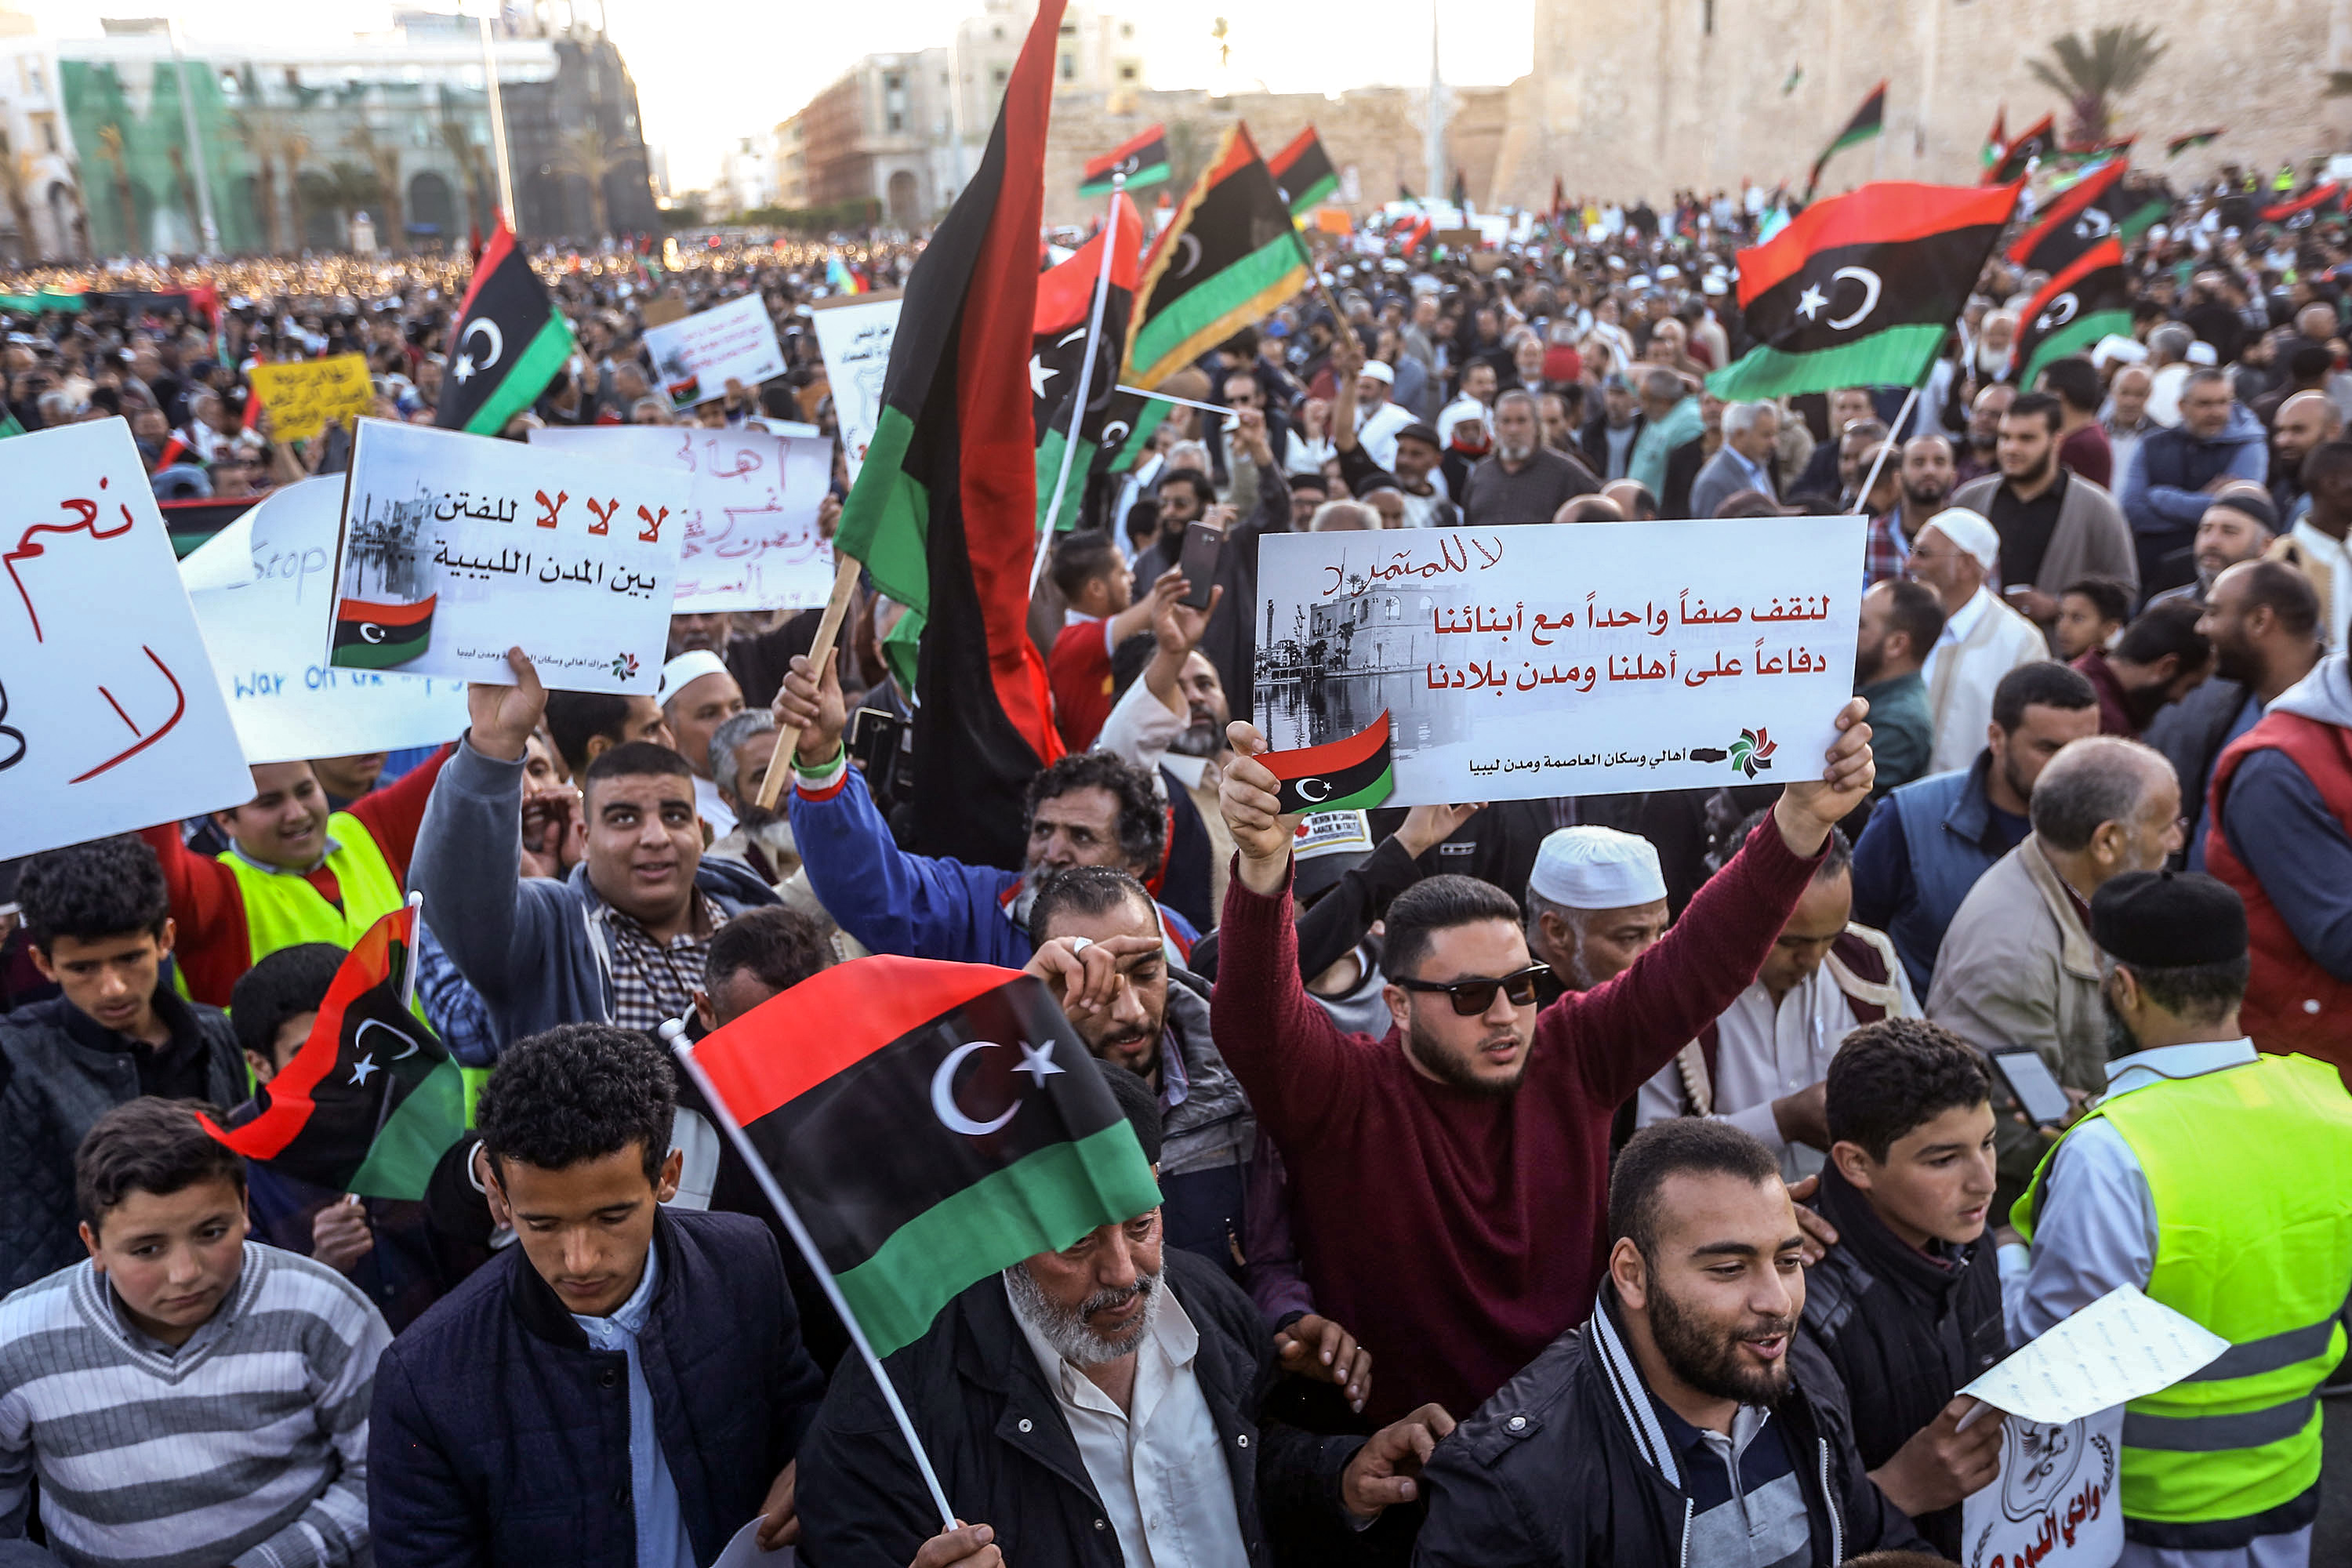 Libyans wave national flags and chant slogans during a demonstration against strongman Khalifa Haftar in Martyrs Square, Tripoli, April 12, 2019.